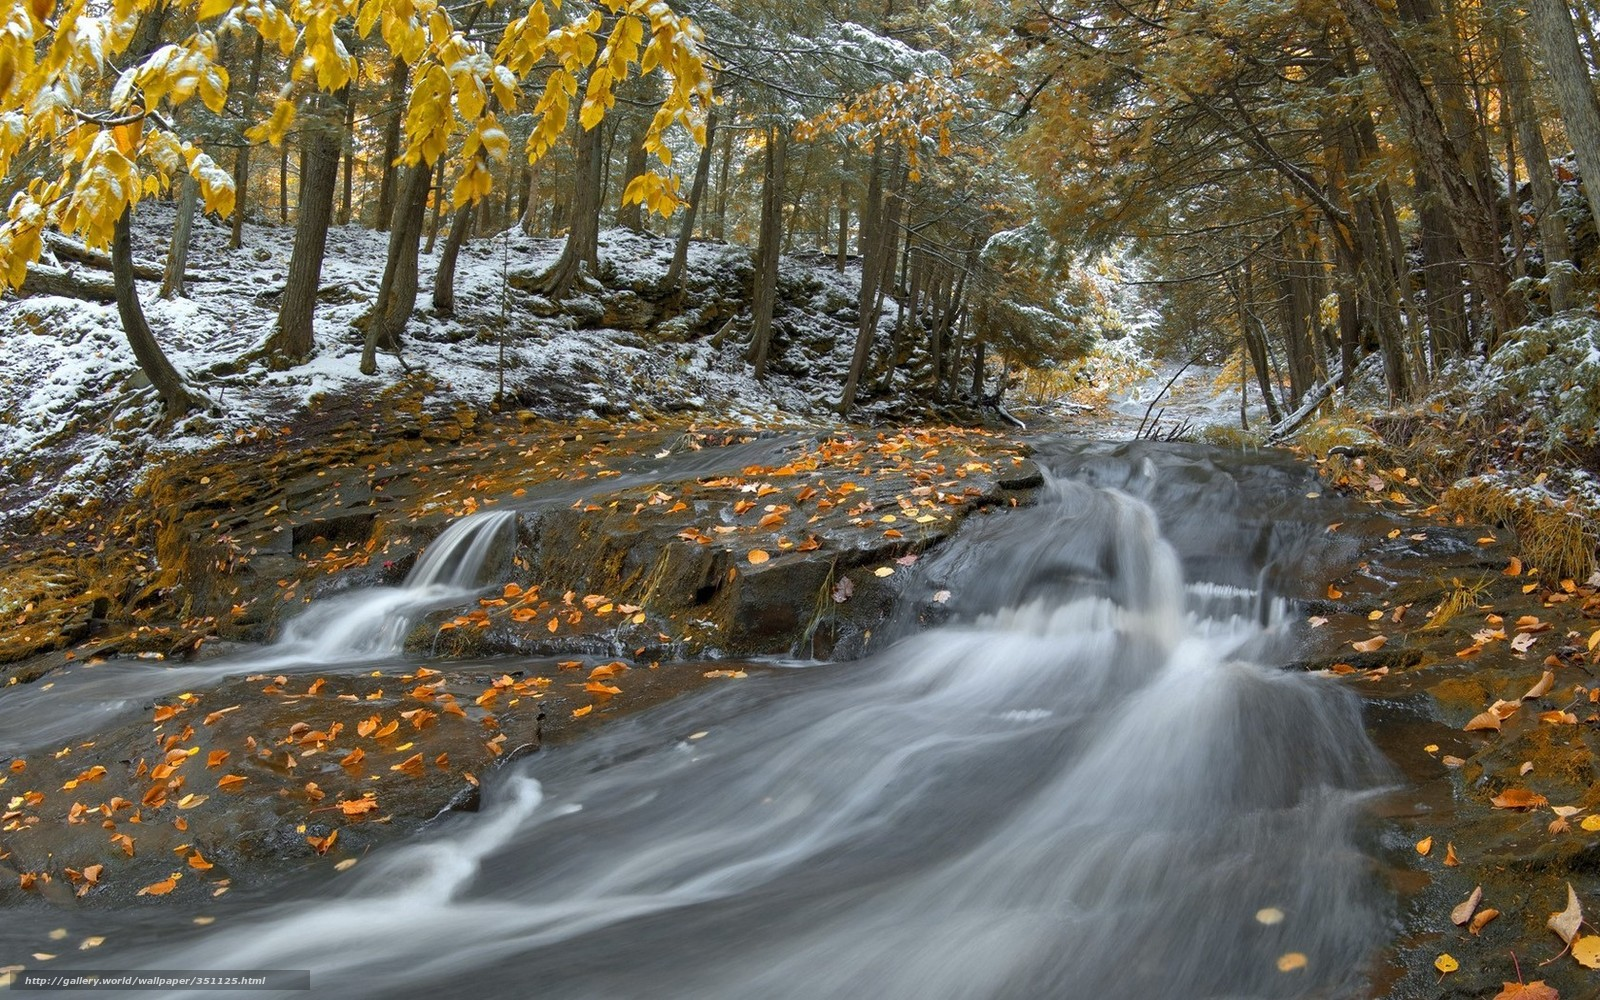 late fall wallpapers and backgrounds - photo #44